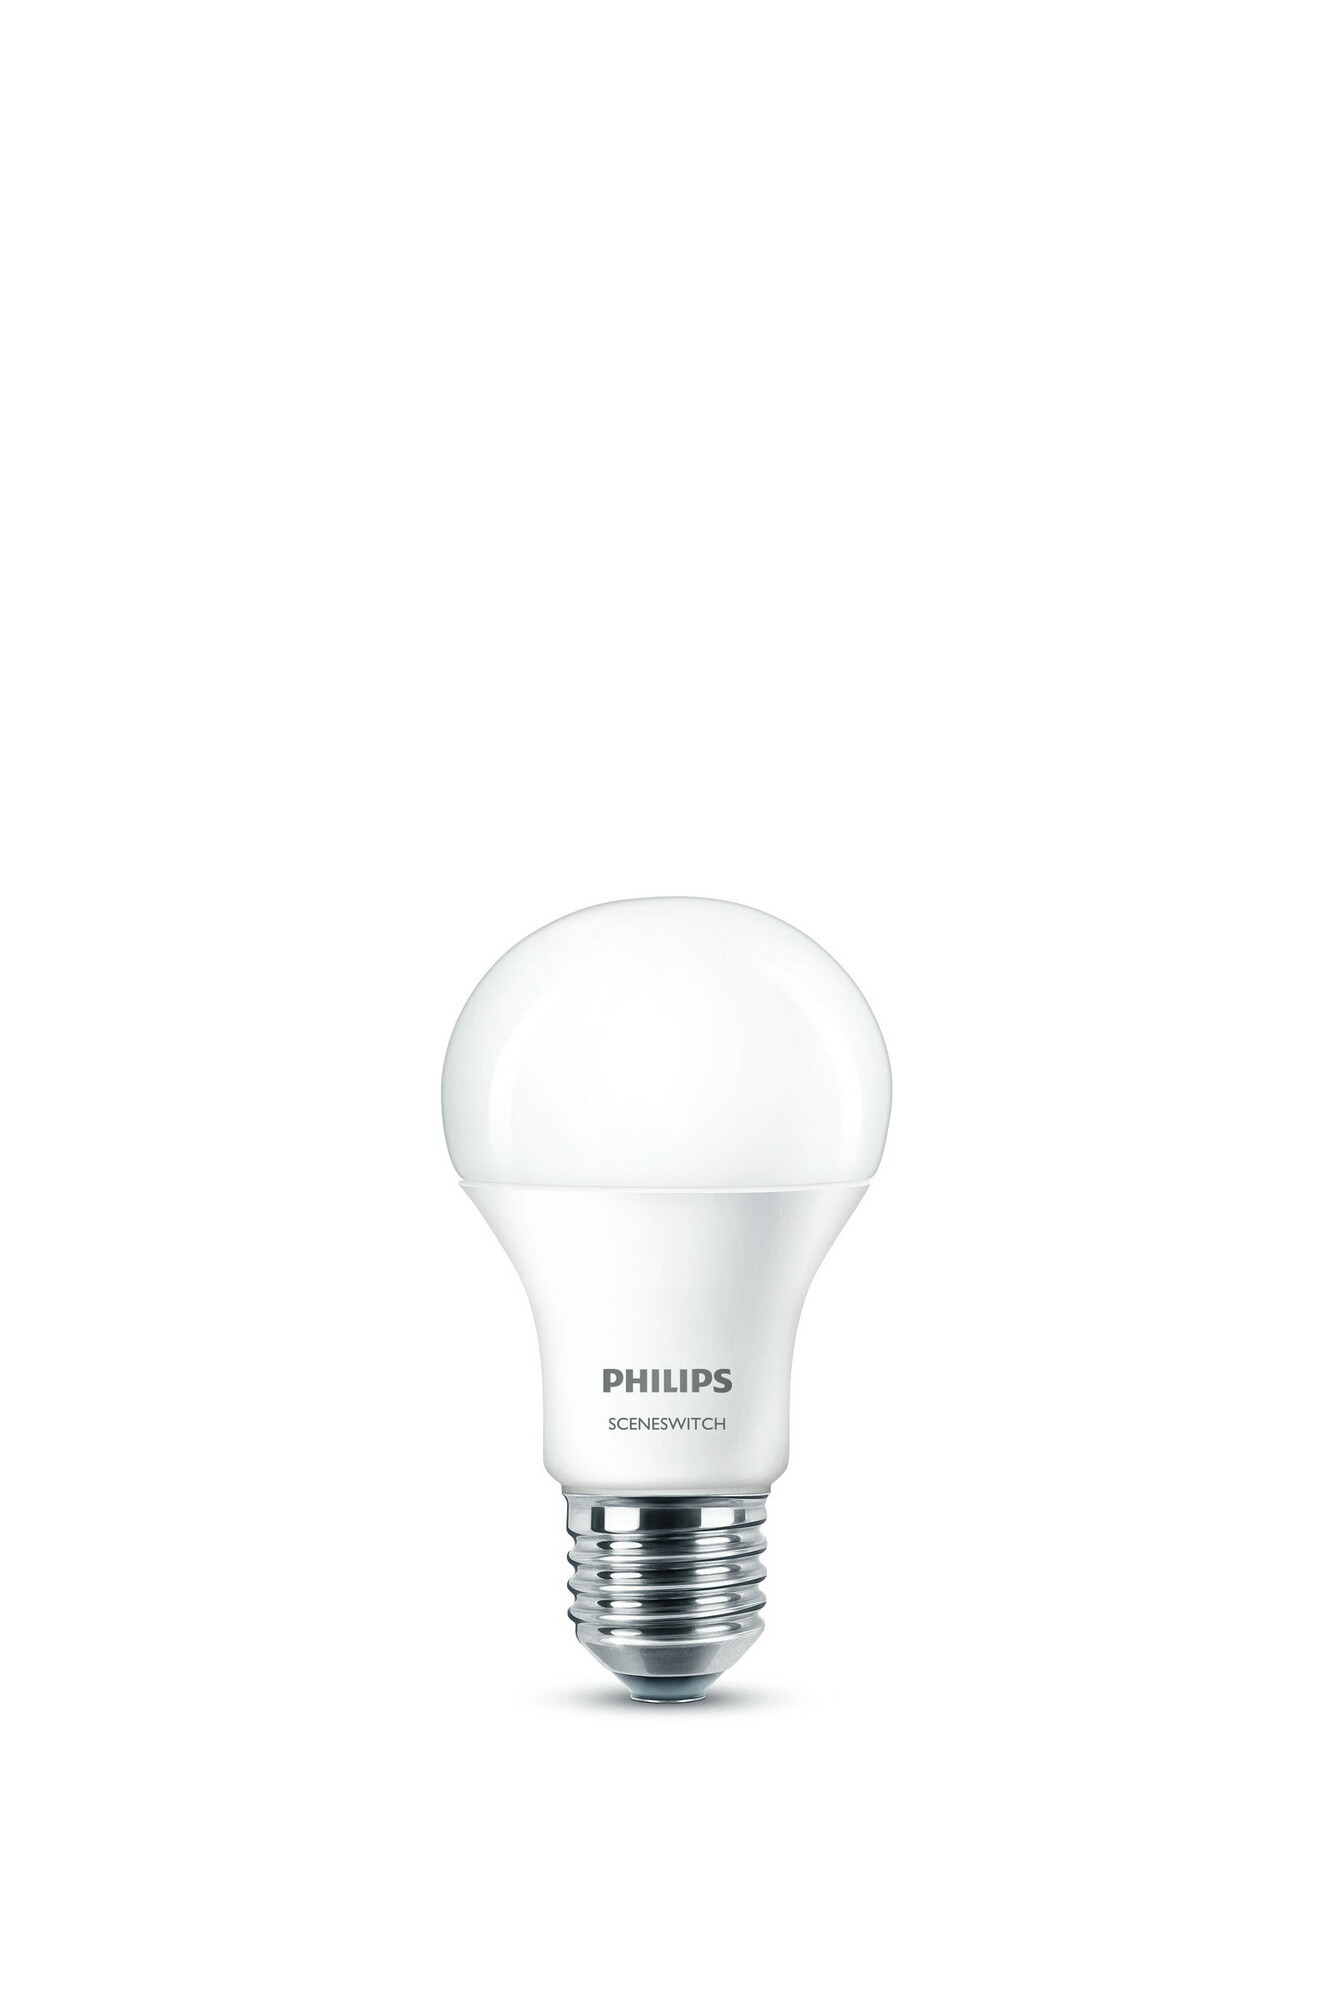 Philips LED SceneSwitch E27 8W 806lm 2700K + 4000K Ampoule Opaque